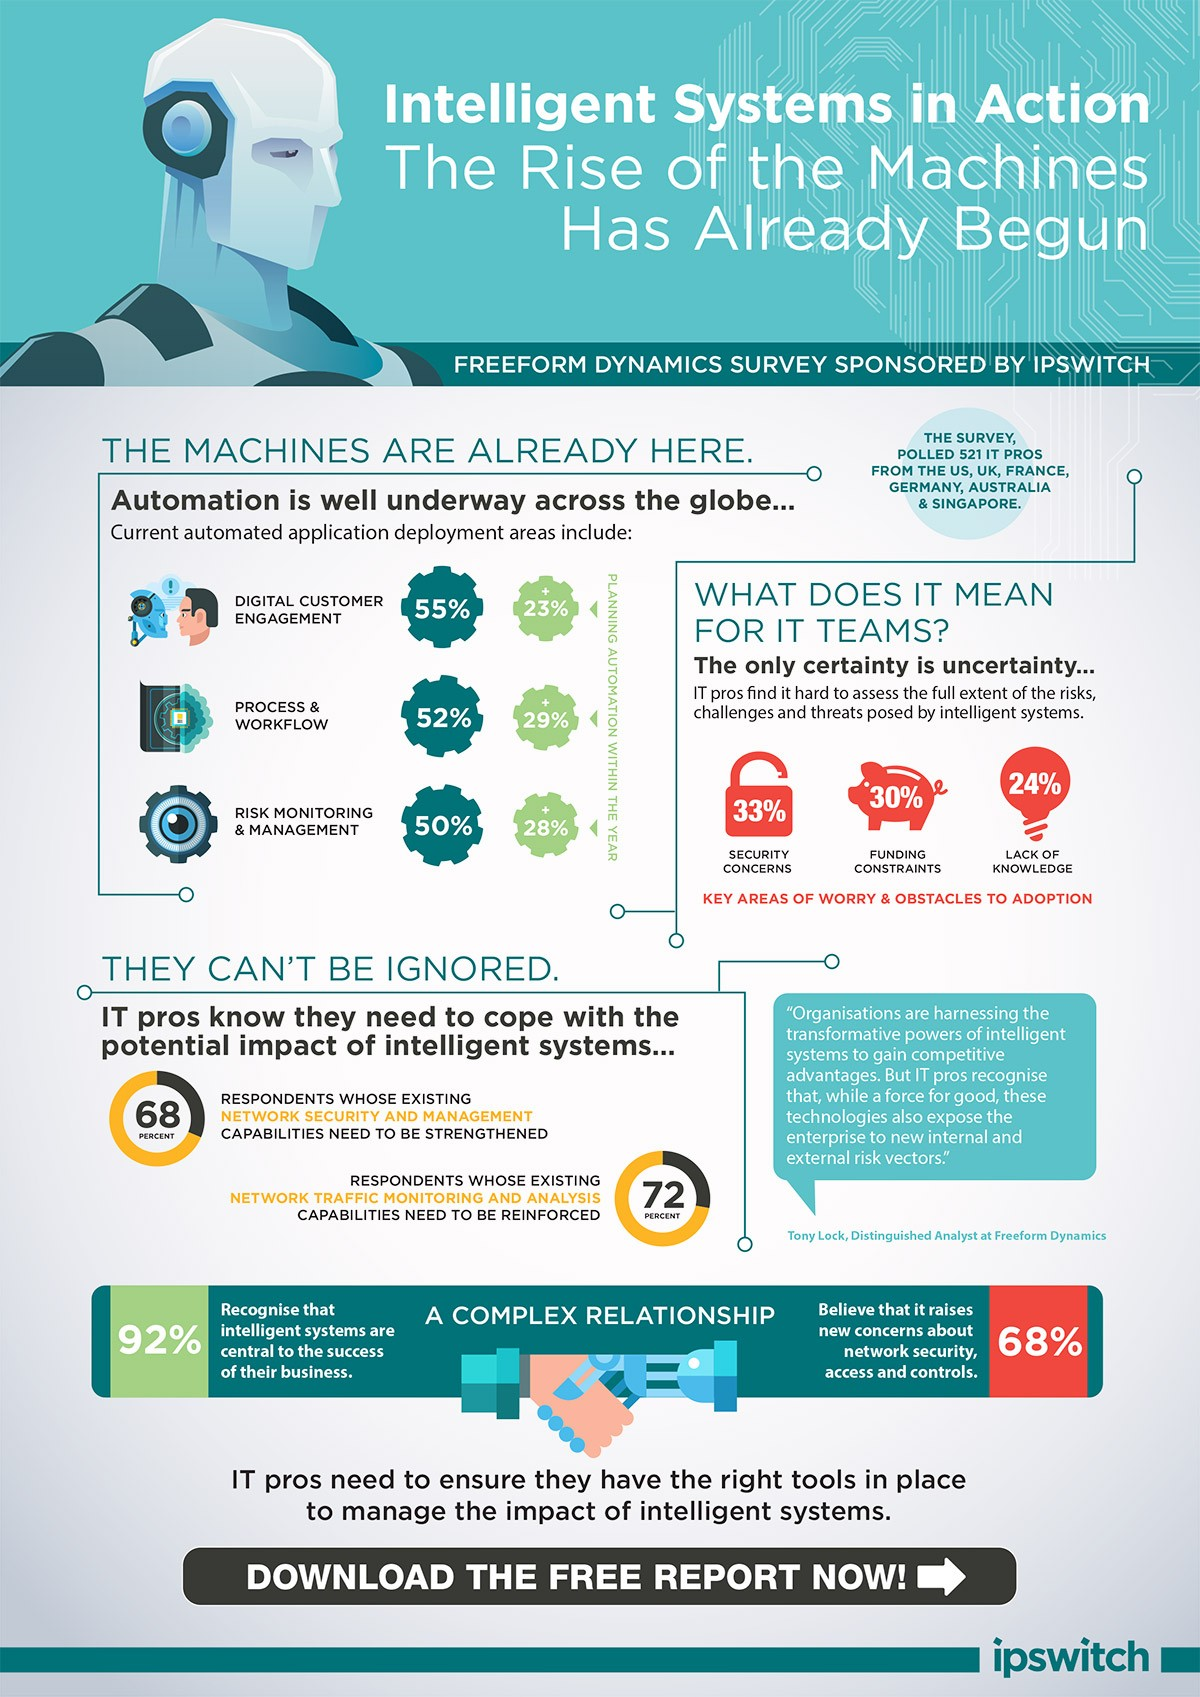 Intelligent-Systems-in-Action_Ipswitch-infographic-web